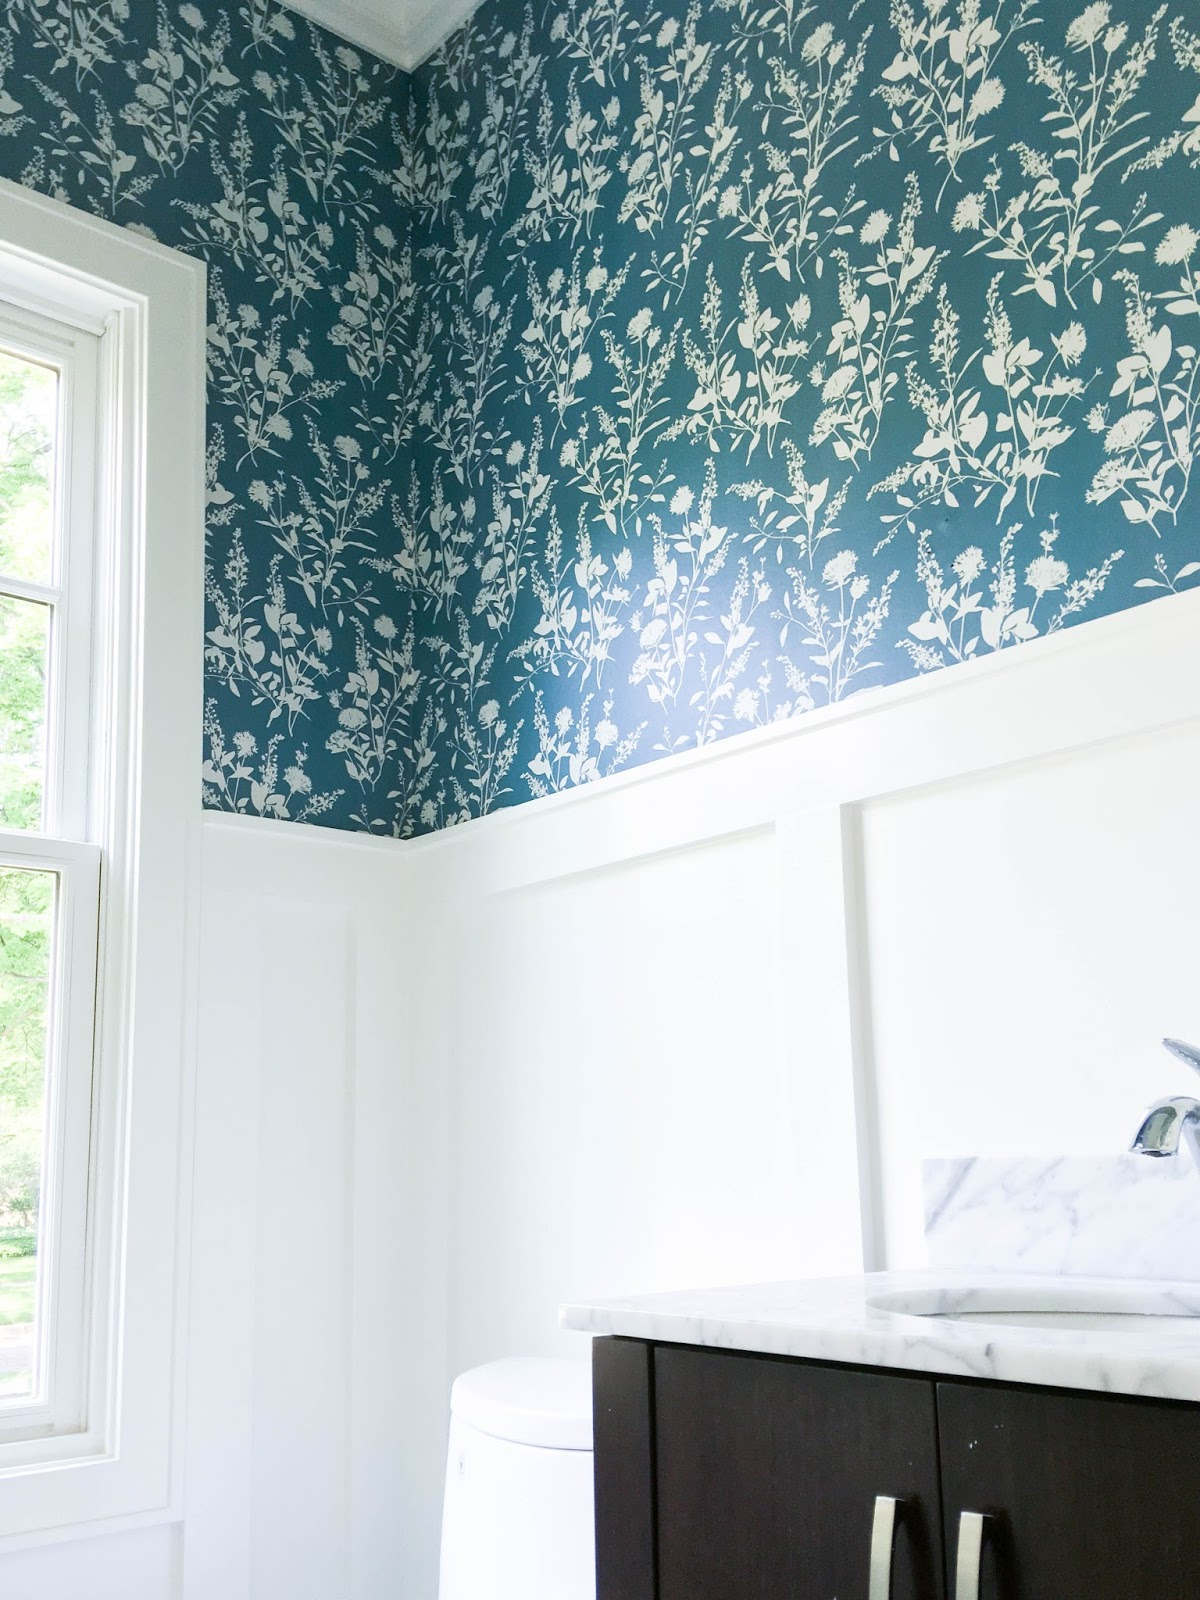 Wallpaper Powder Room Home with Keki